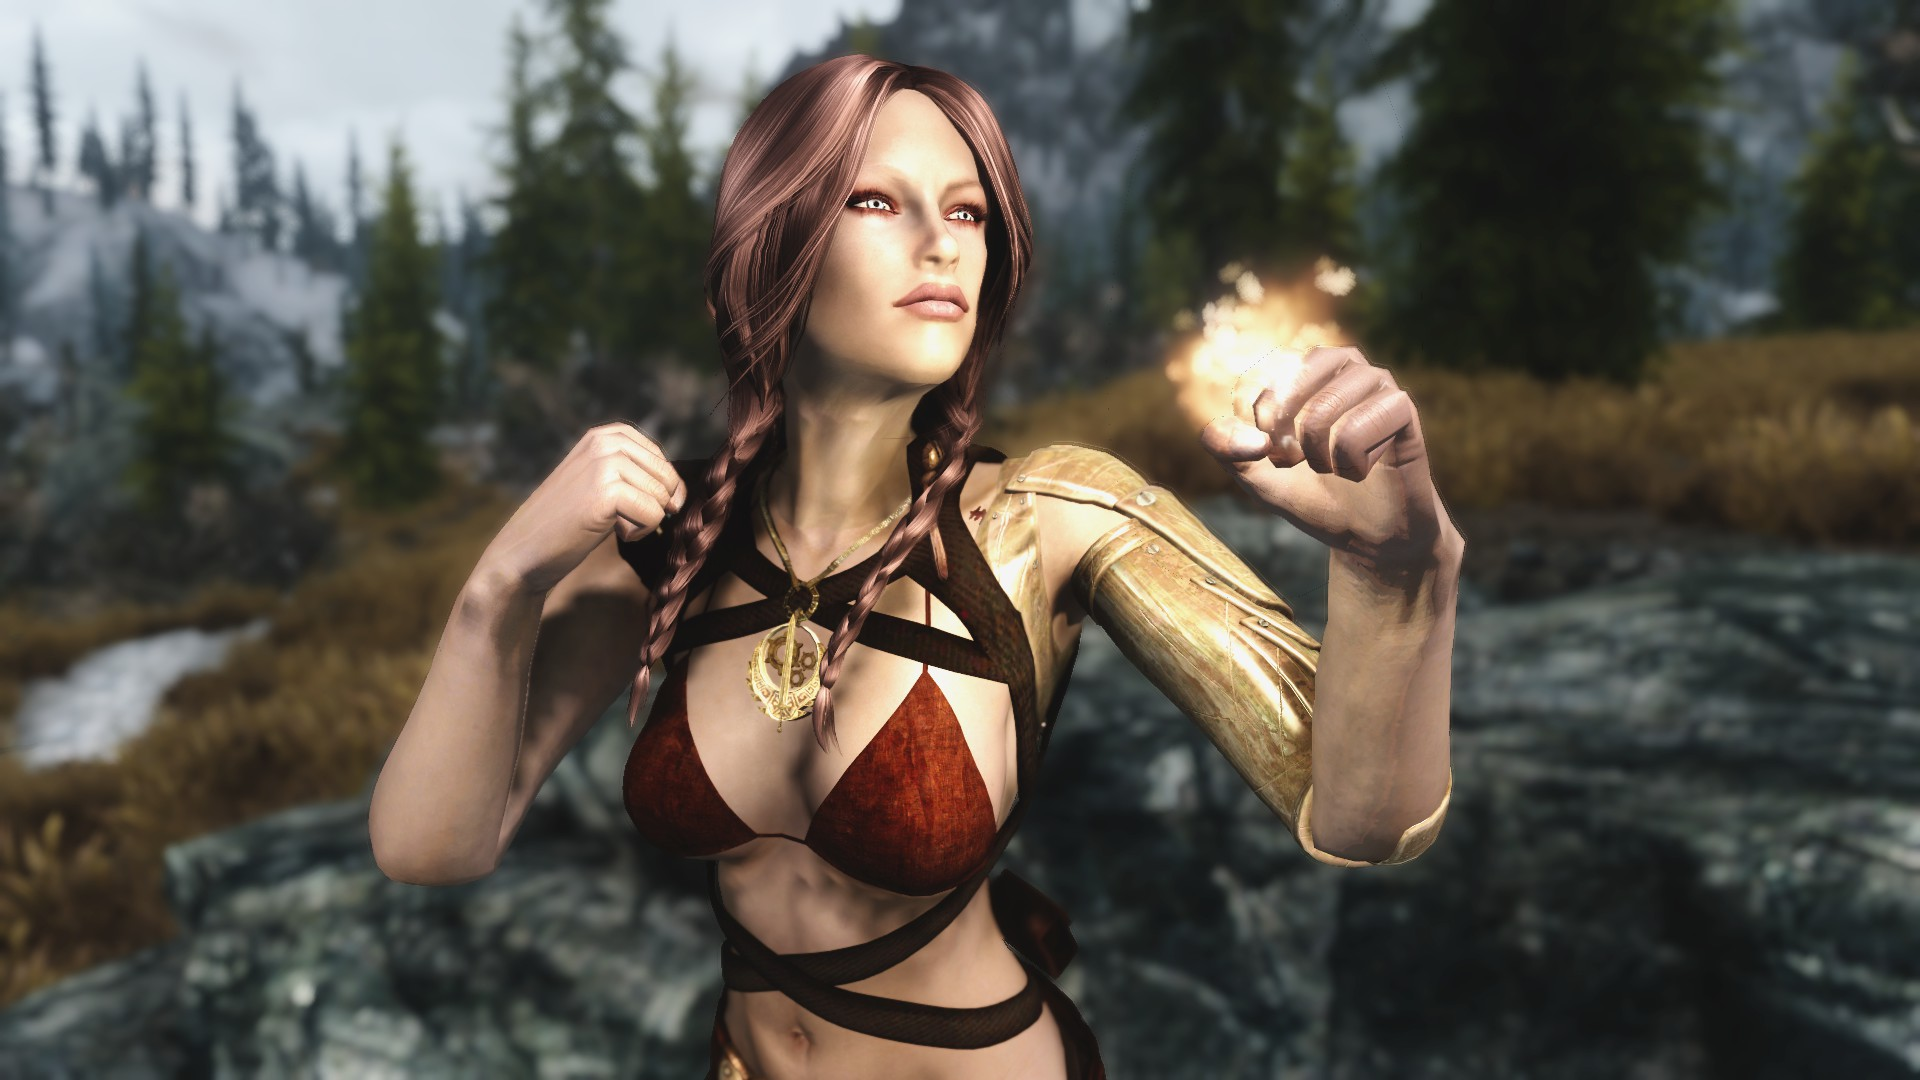 Nude skyrim babe pics exploited pic